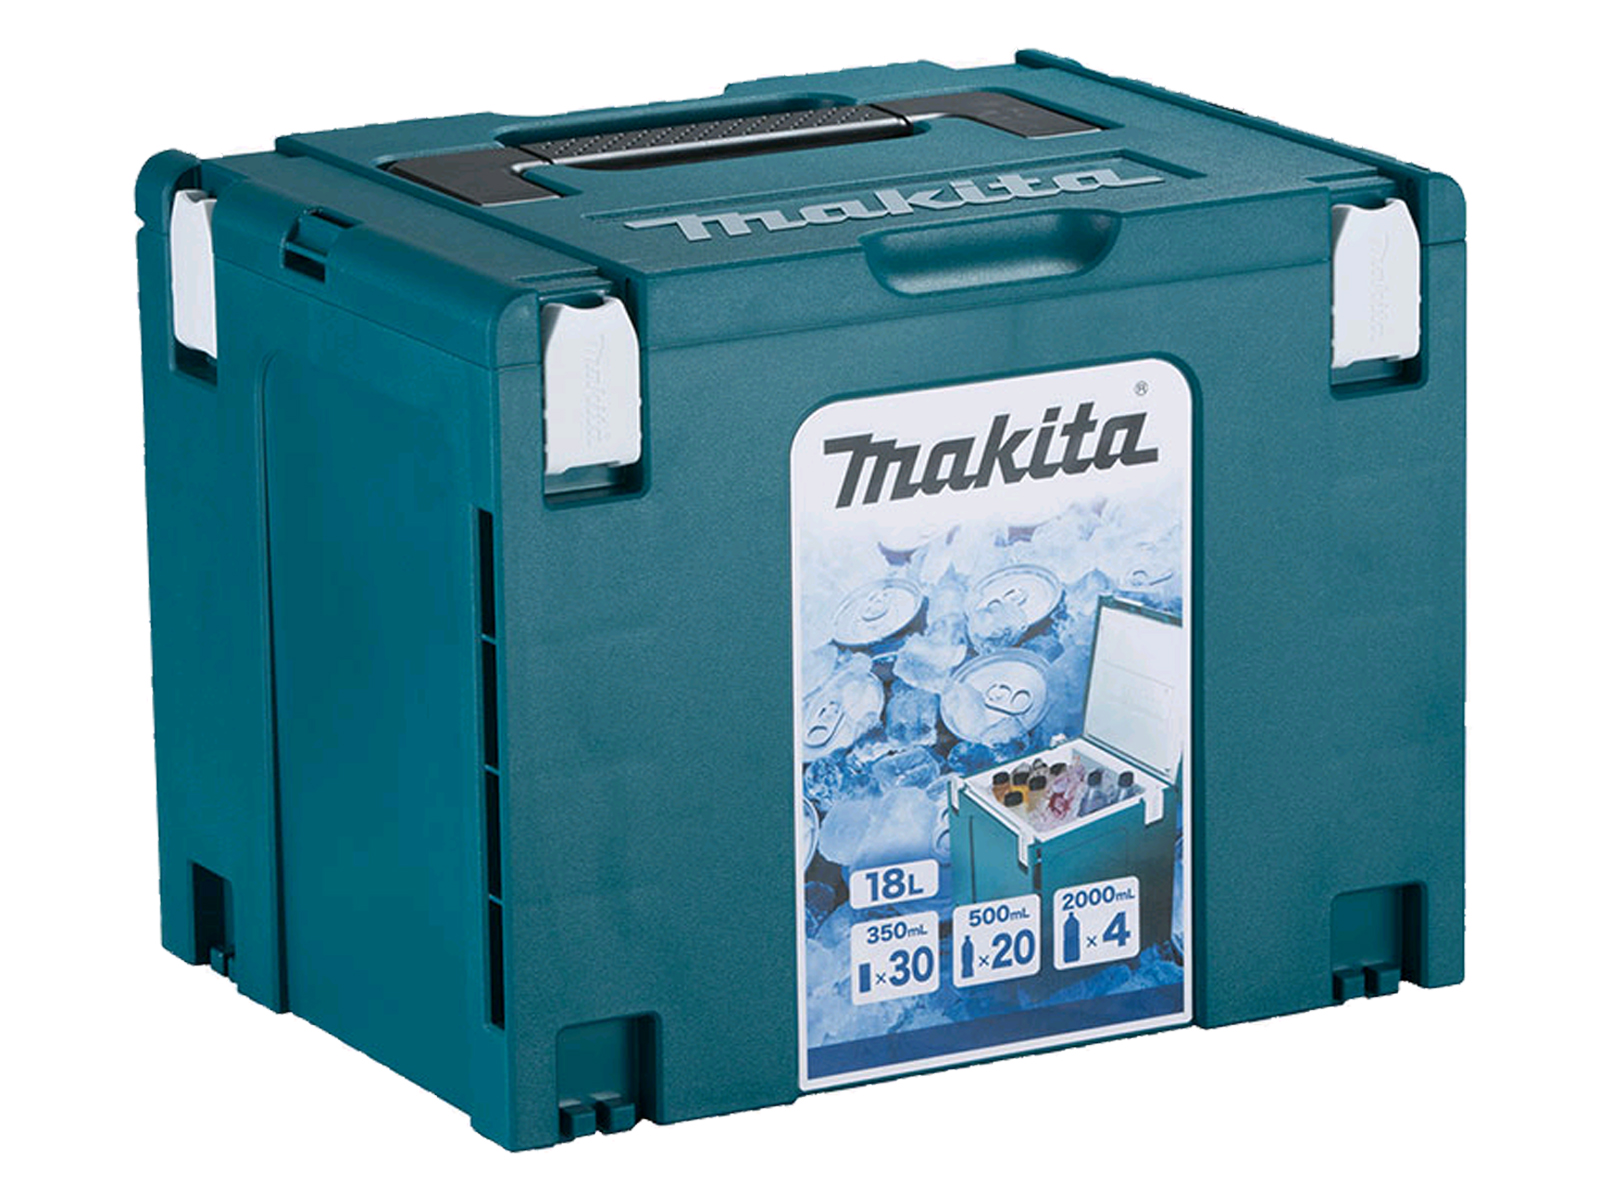 MAKITA STACKING CASE TYPE 4 - COOLER BOX - 198253-4 - 396MM X 296MM X 315MM